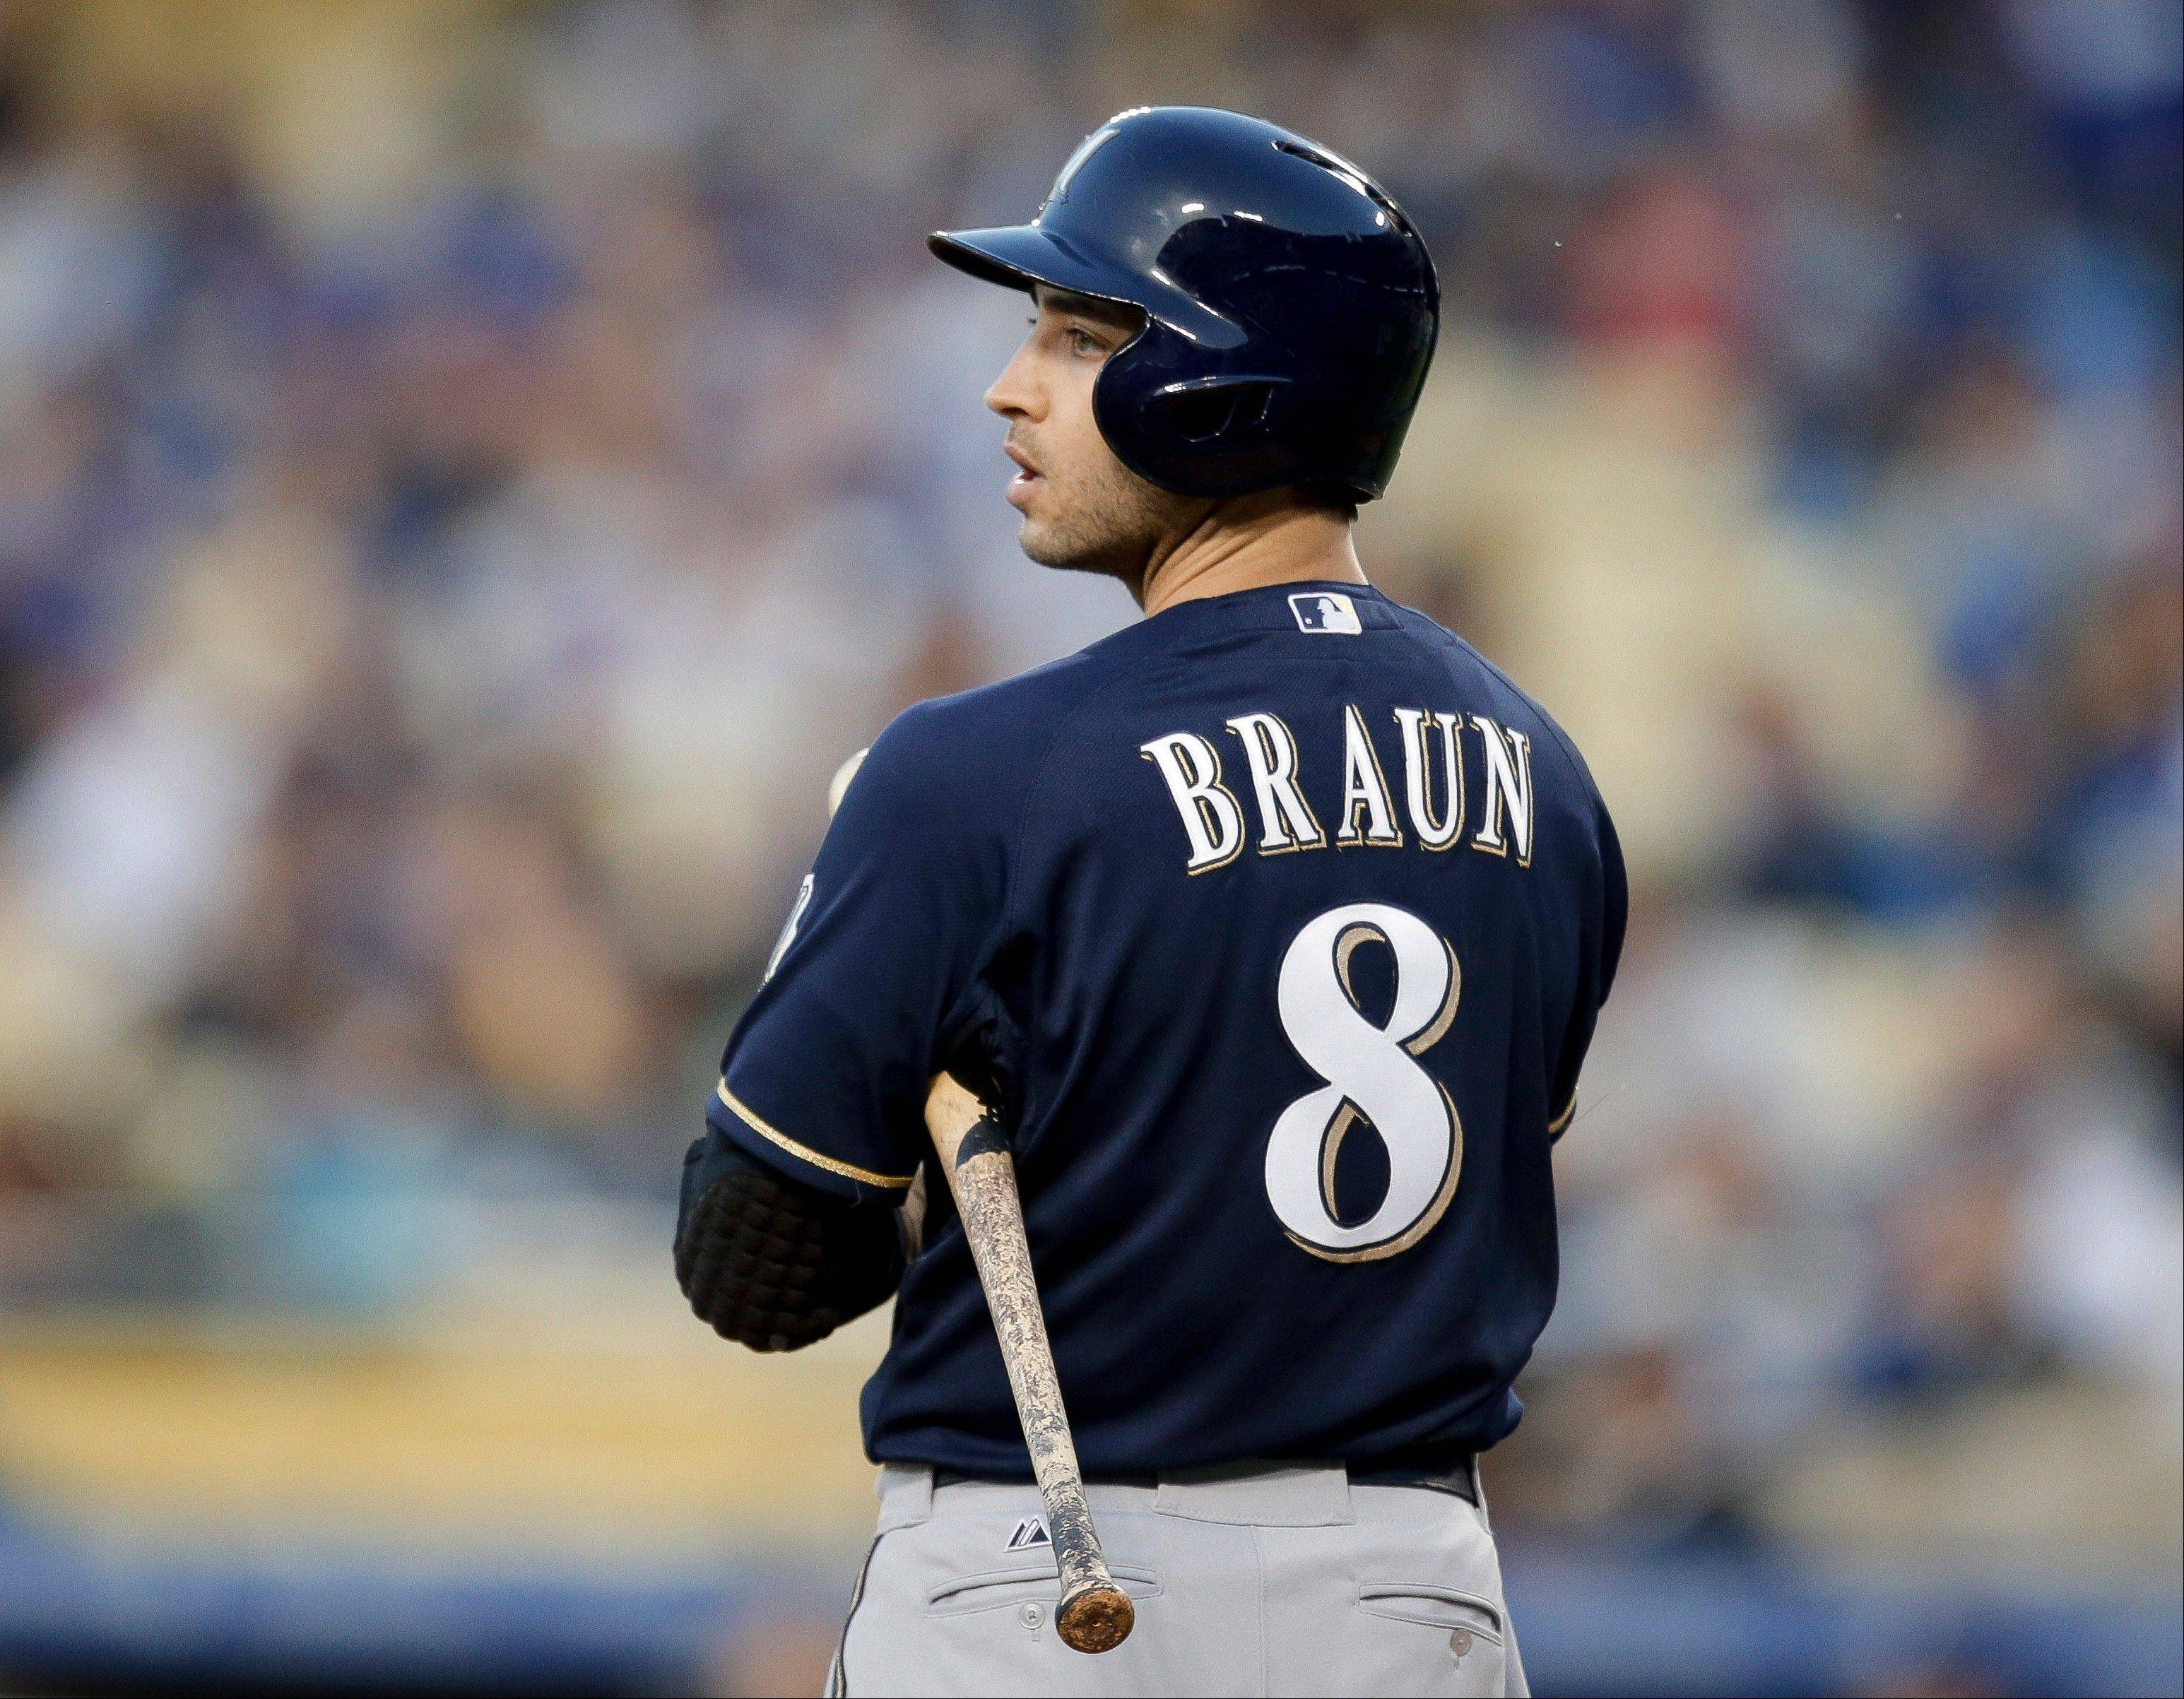 Milwaukee Brewers outfielder Ryan Braun gets ready to bat against the Los Angeles Dodgers in Los Angeles.